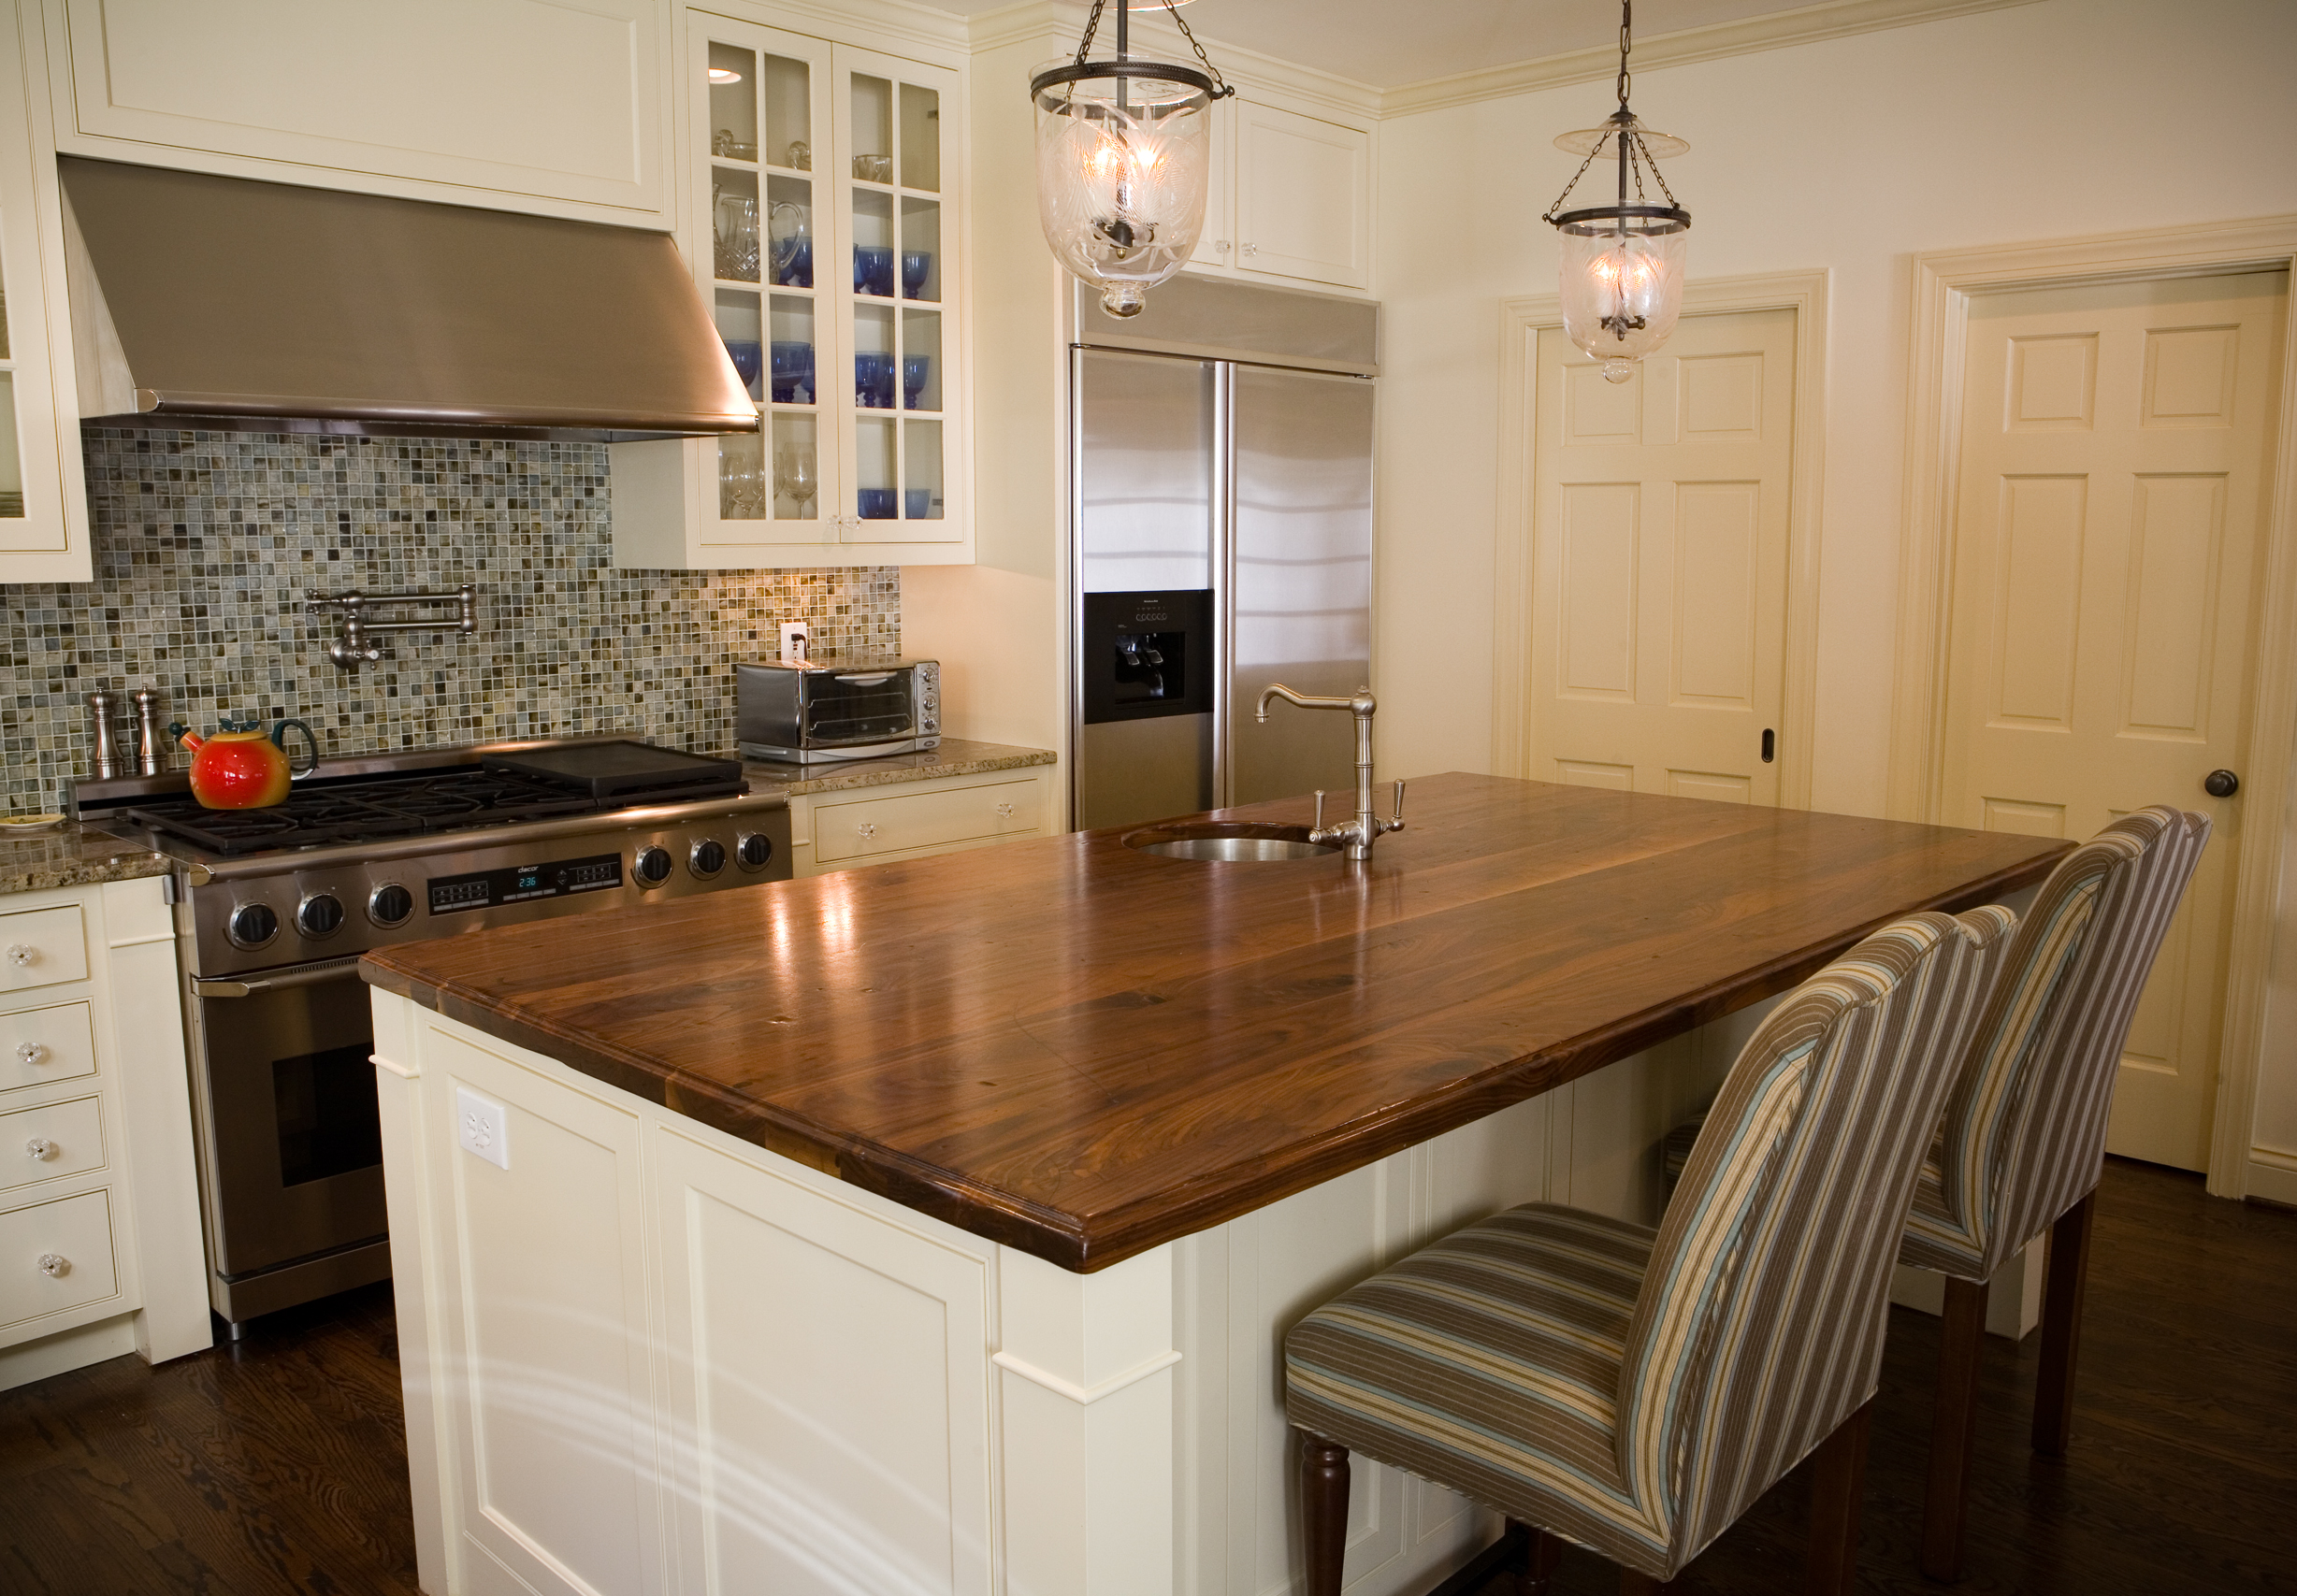 All About Wood Kitchen Countertops You Have to Know ...